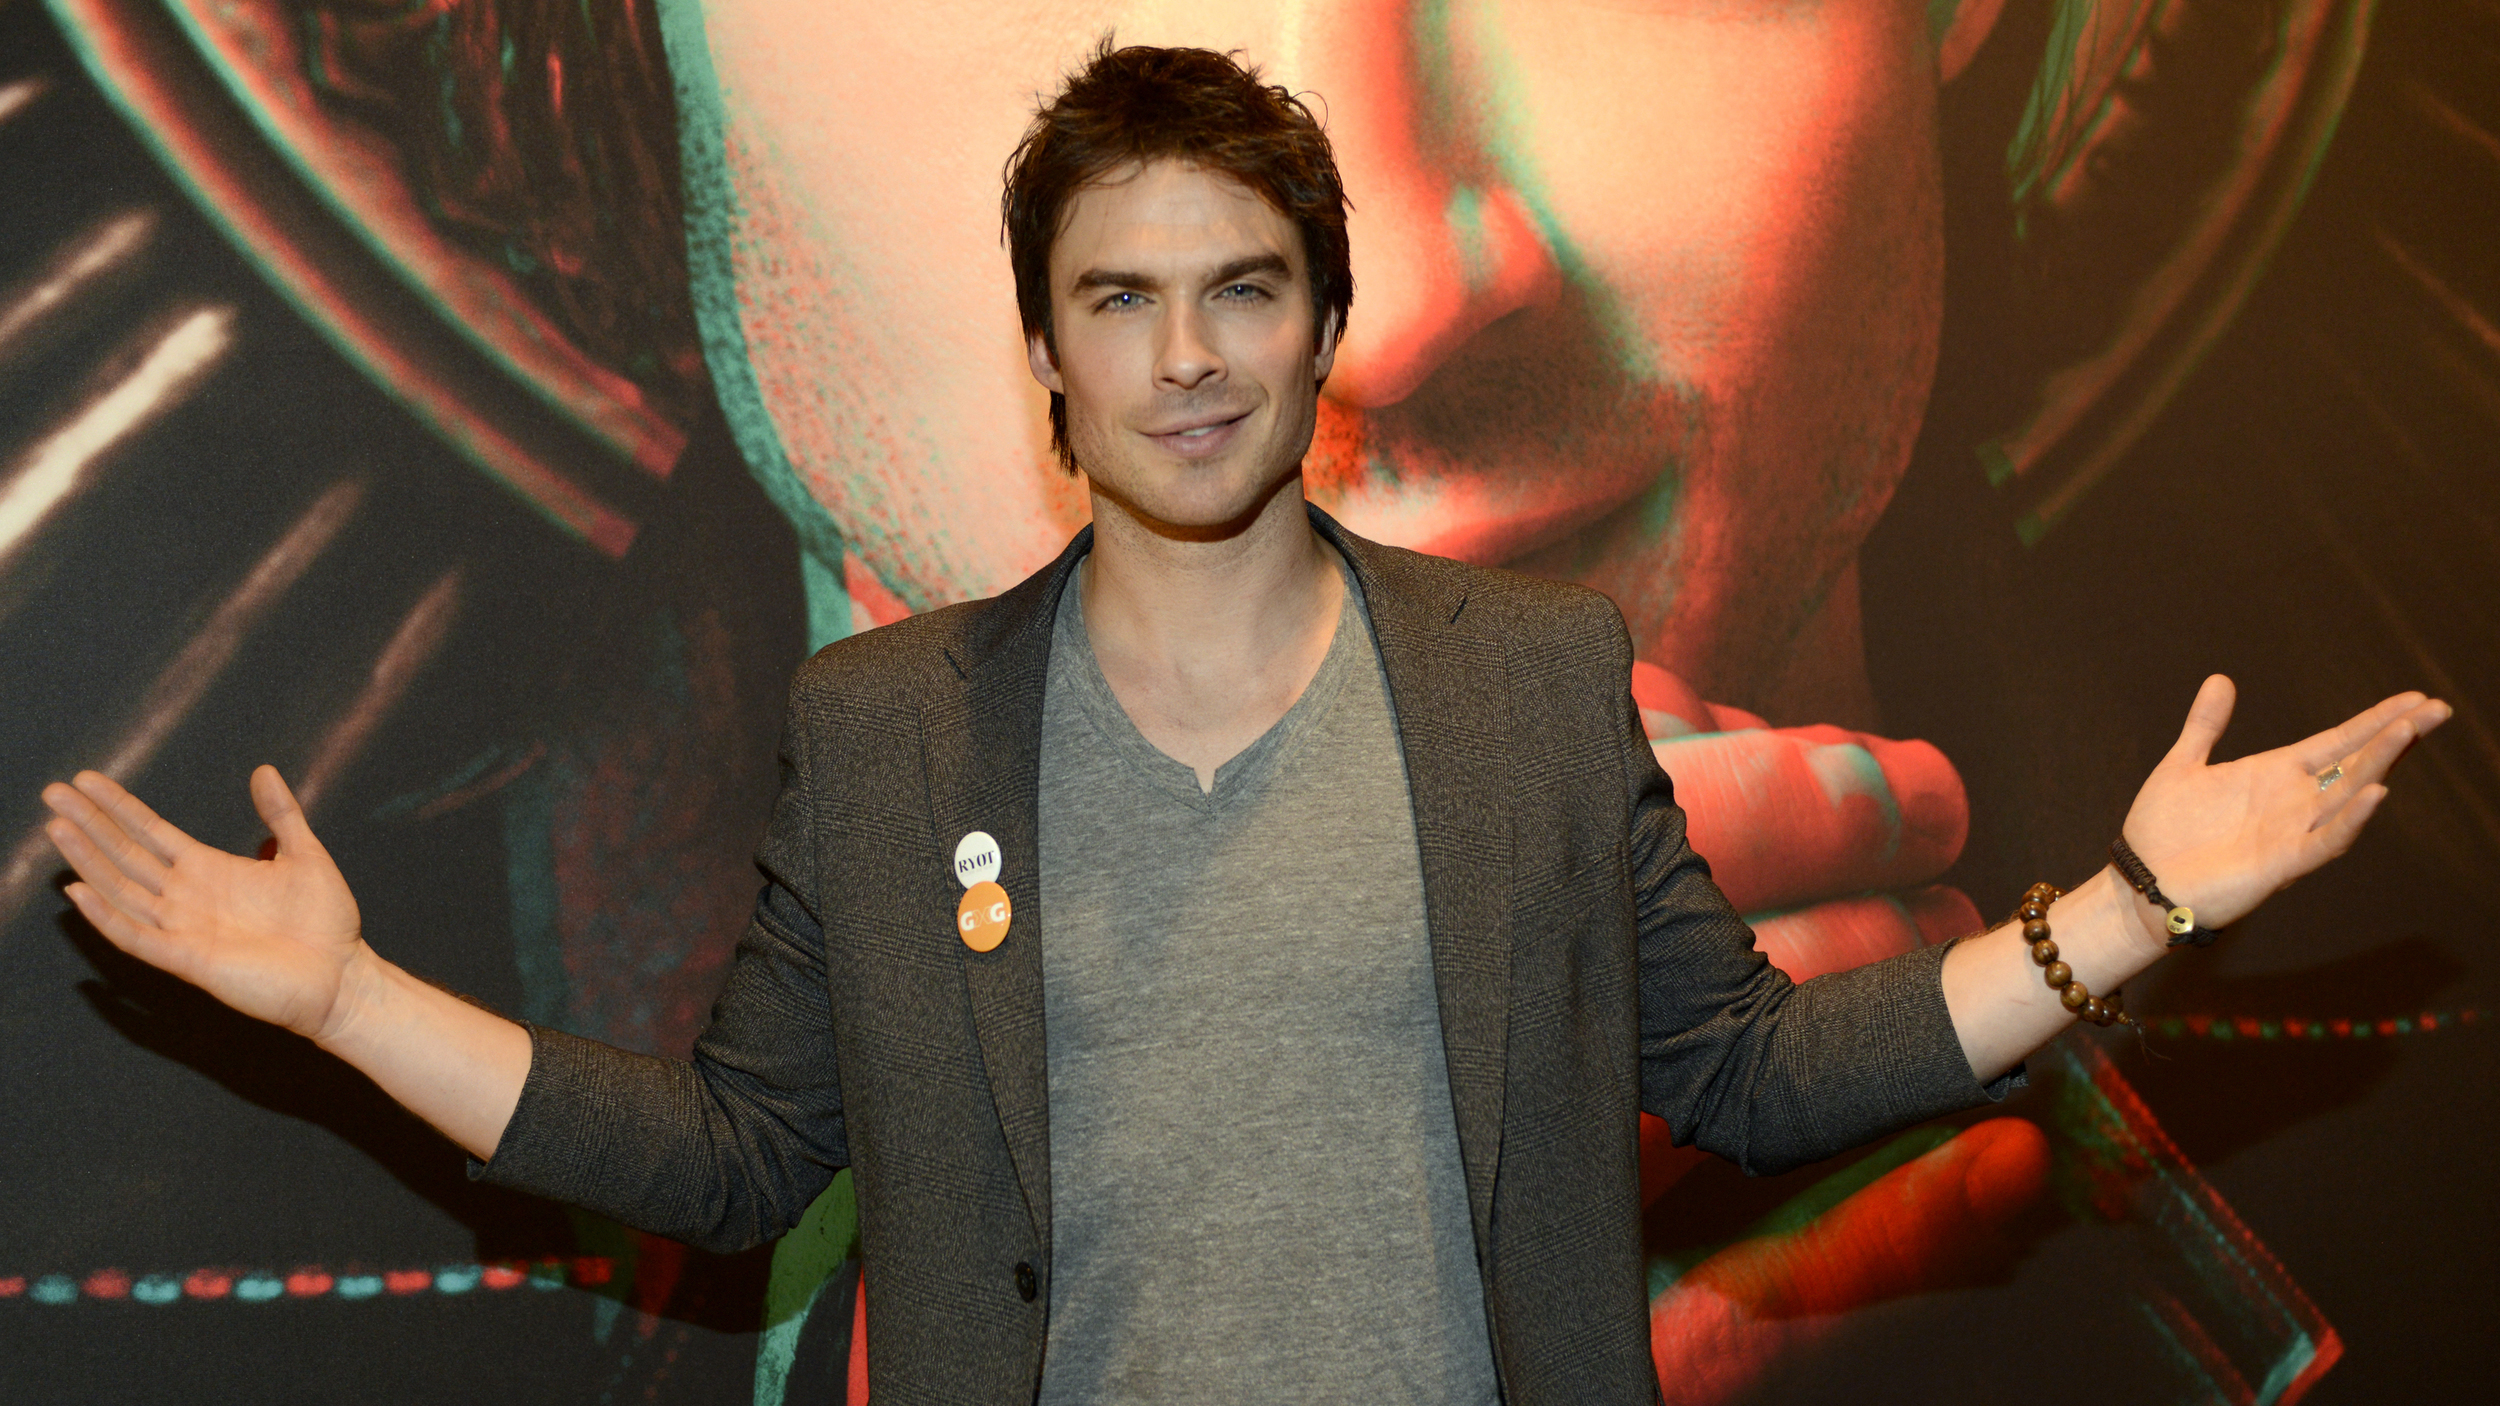 Ian somerhalder strikes a pose at the warner brothers tv party during 2013 south by southwest